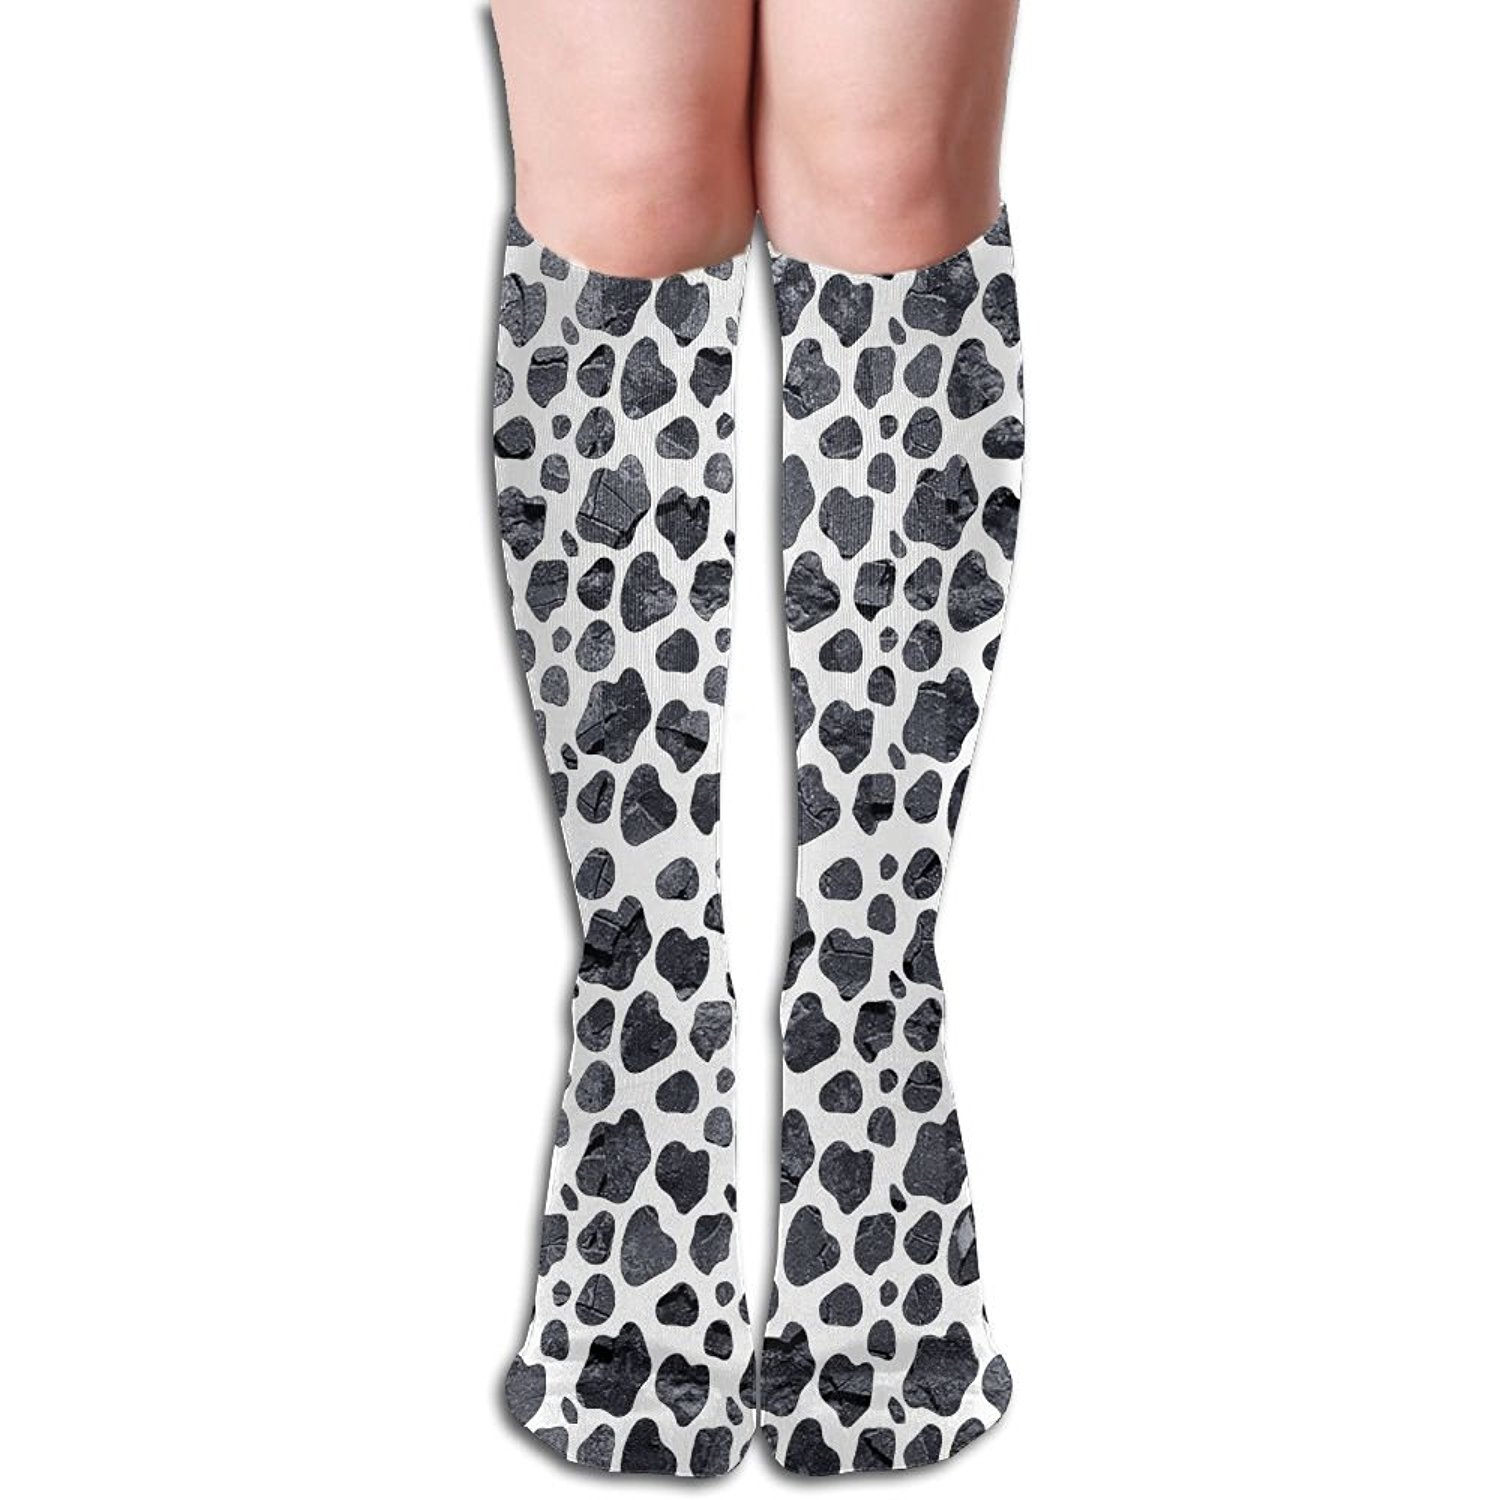 ca00ee750c519 Get Quotations · Cow Dot Cow Lover Gift Unisex Sports Long Knee High Socks  Tube Socks Stockings